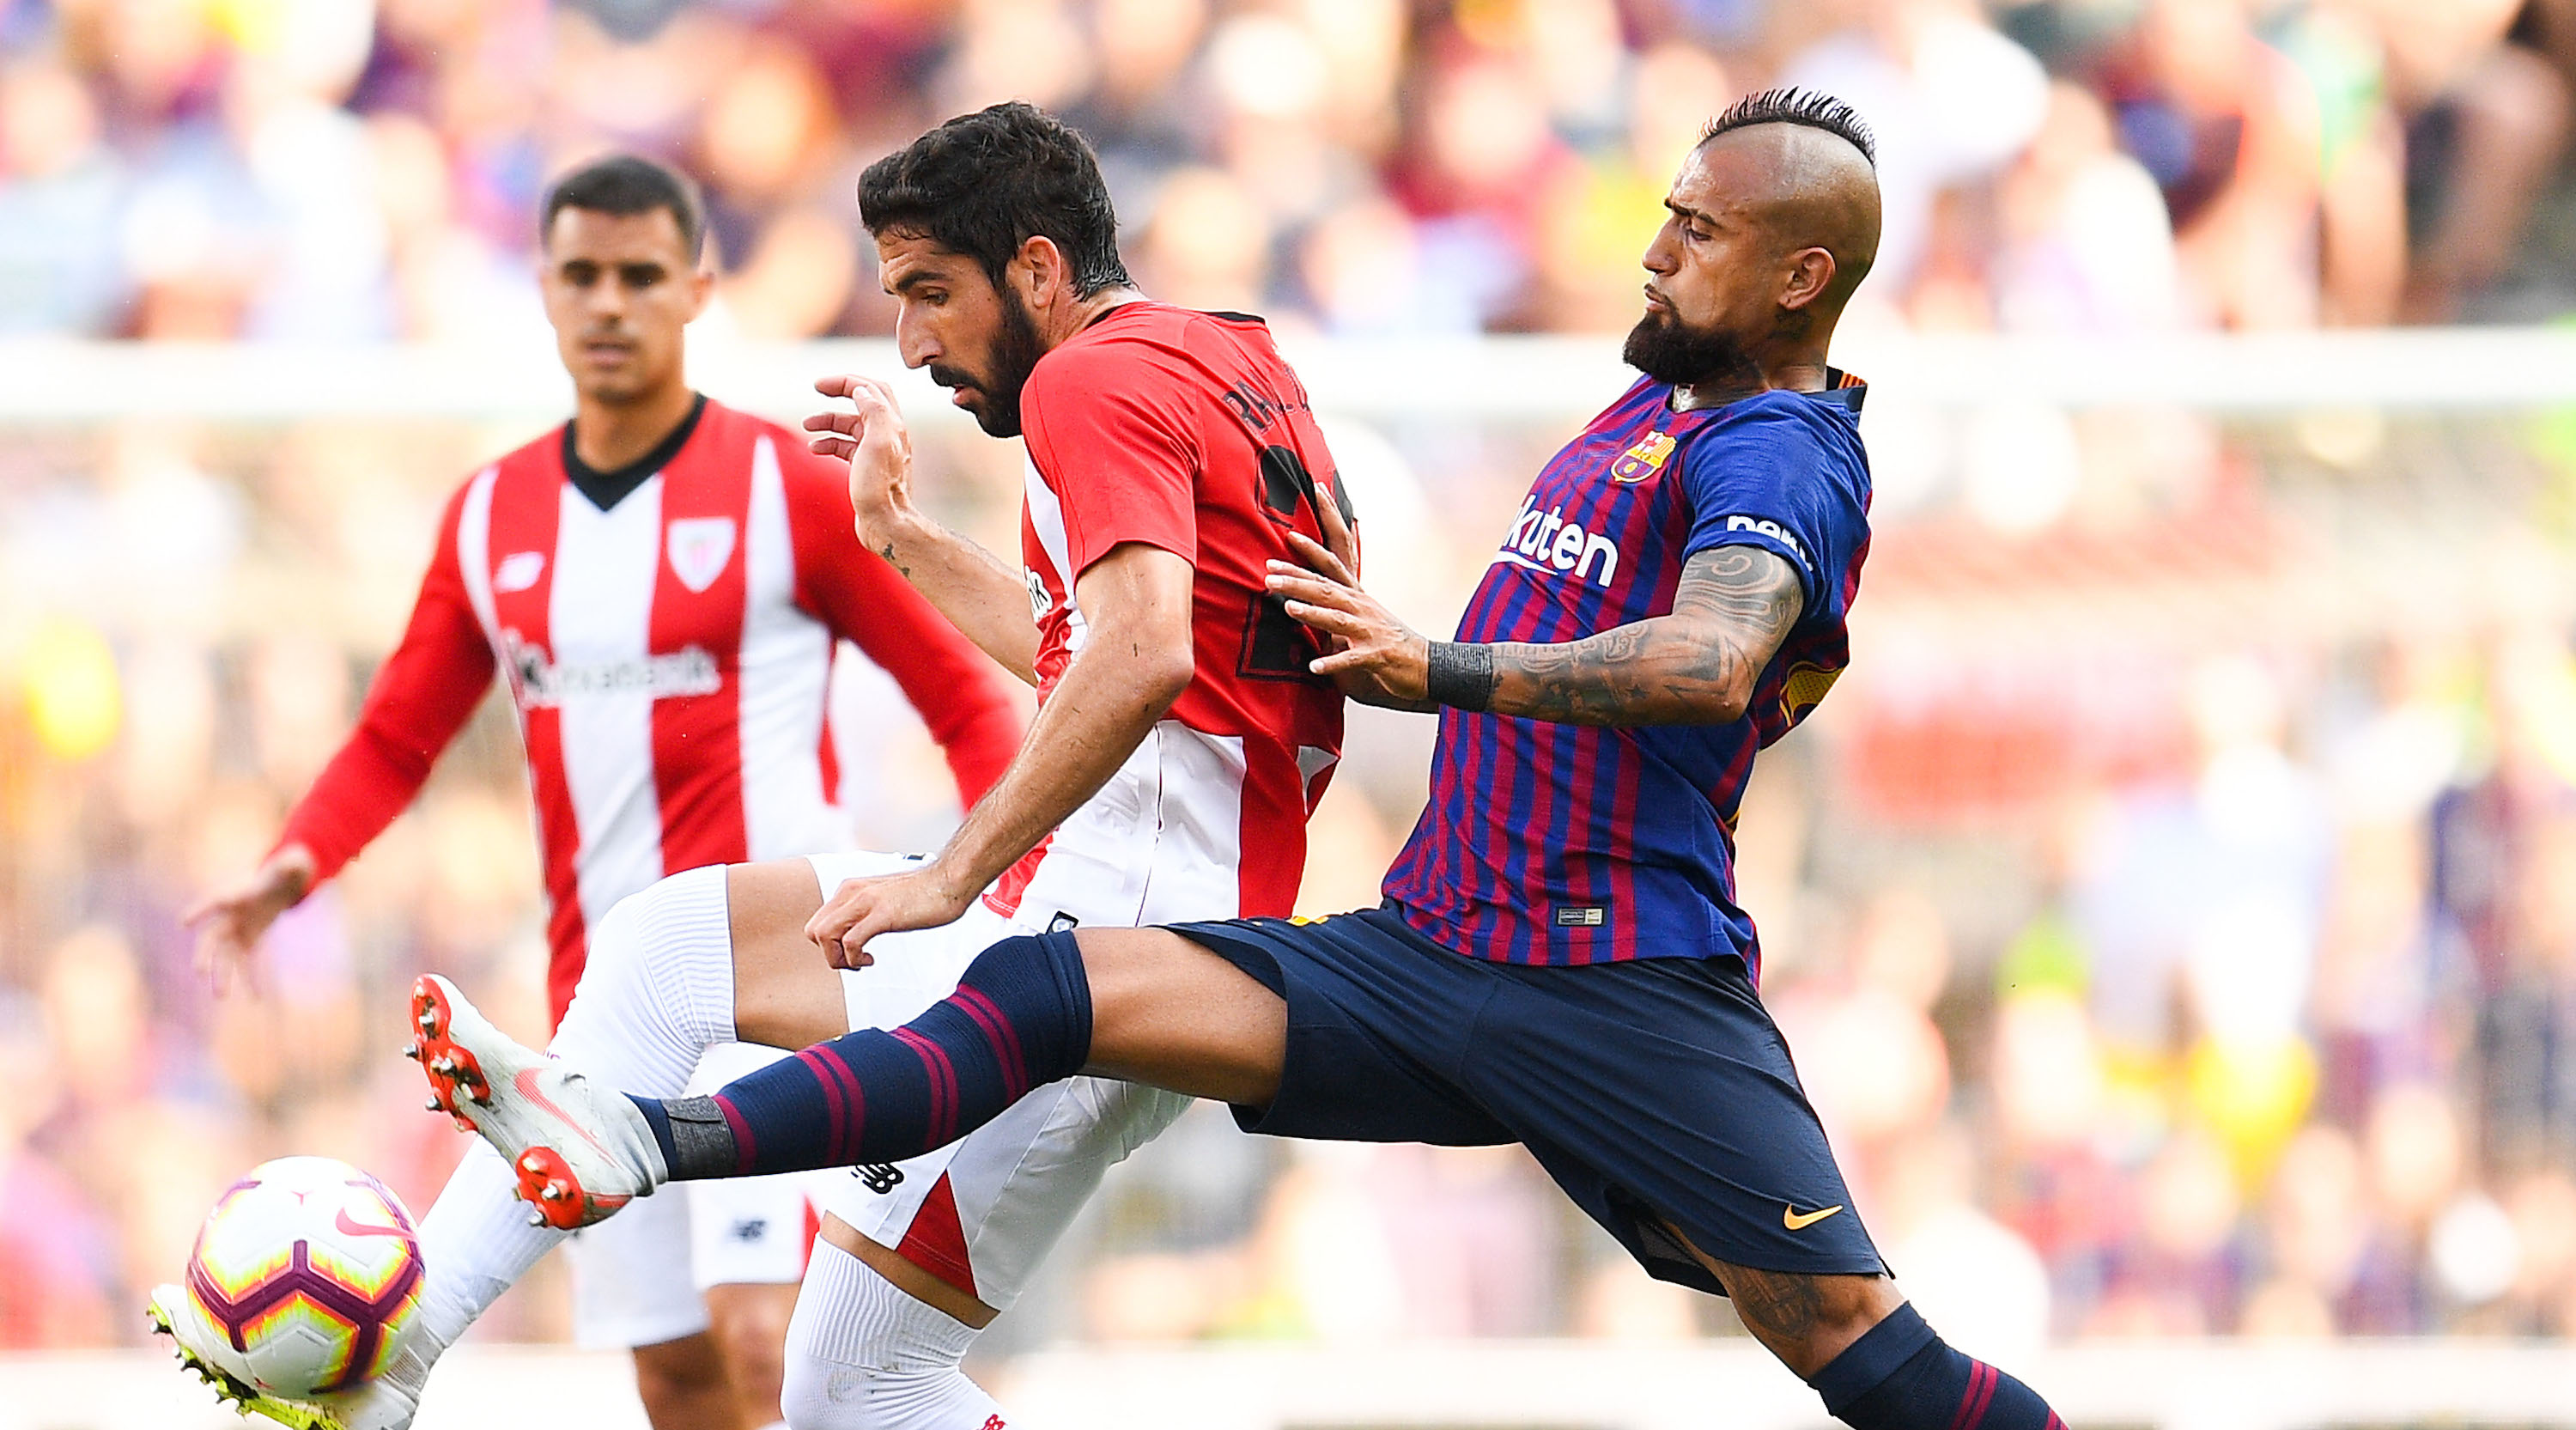 BARCELONA, SPAIN - SEPTEMBER 29: Arturo Vidal of FC Barcelona competes for the ball with Raul Garcia of Athletic Club during the La Liga match between FC Barcelona and Athletic Club at Camp Nou on September 29, 2018 in Barcelona, Spain. (Photo by David Ramos/Getty Images)